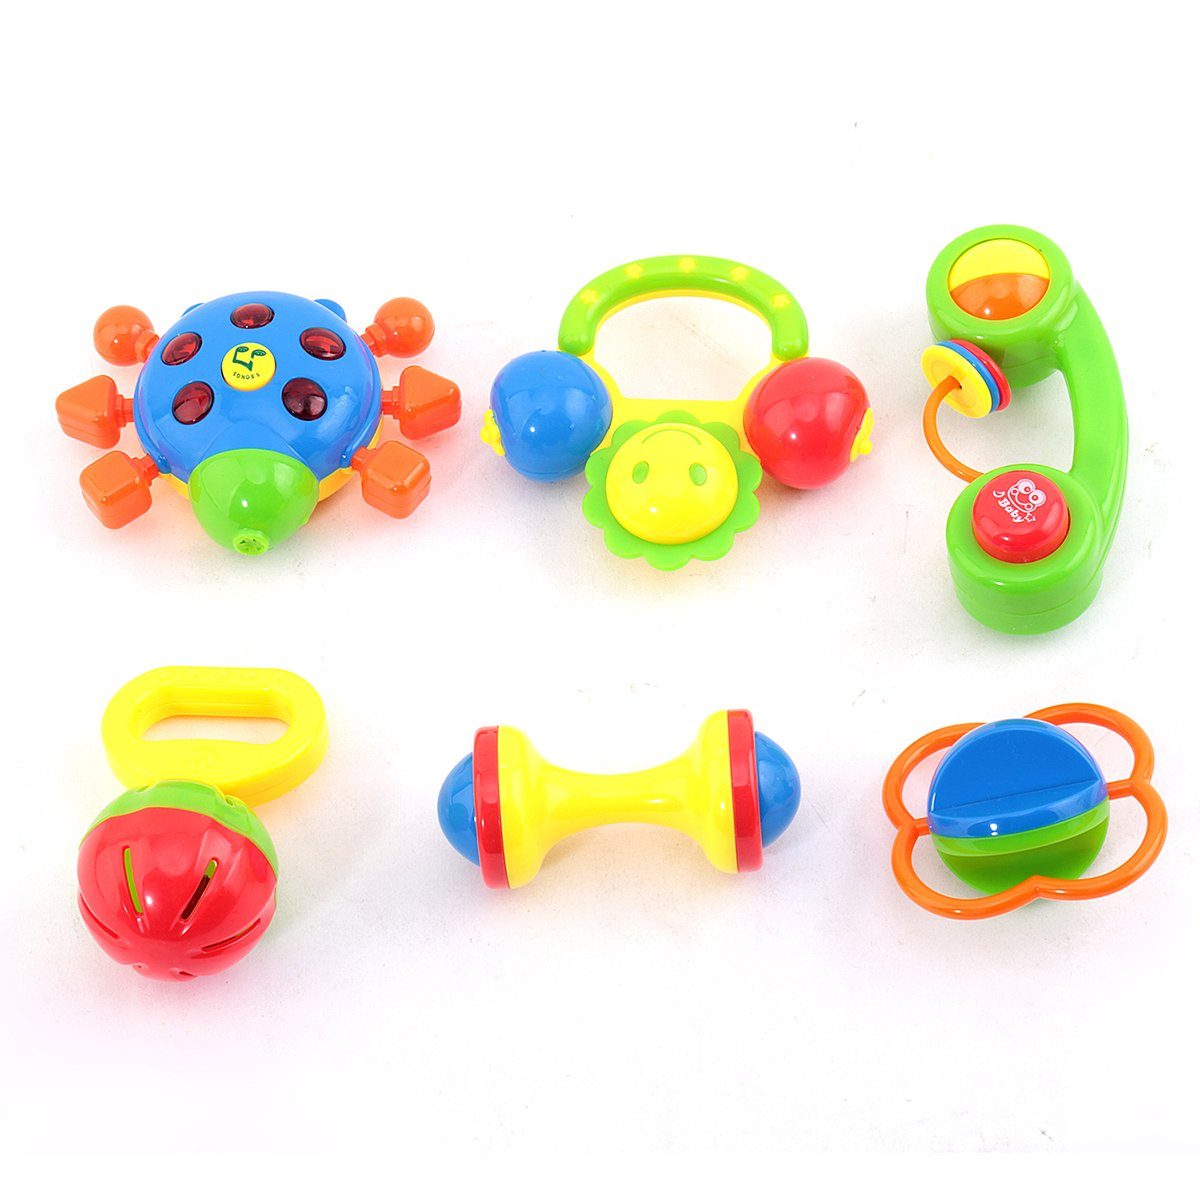 KAWO Baby's First Rattle Set Cartoon Teether Play Toy Infant Musical Toy Christmas Gift 6 Pieces- Colors May Vary by KAWO   B01M0XAEVT